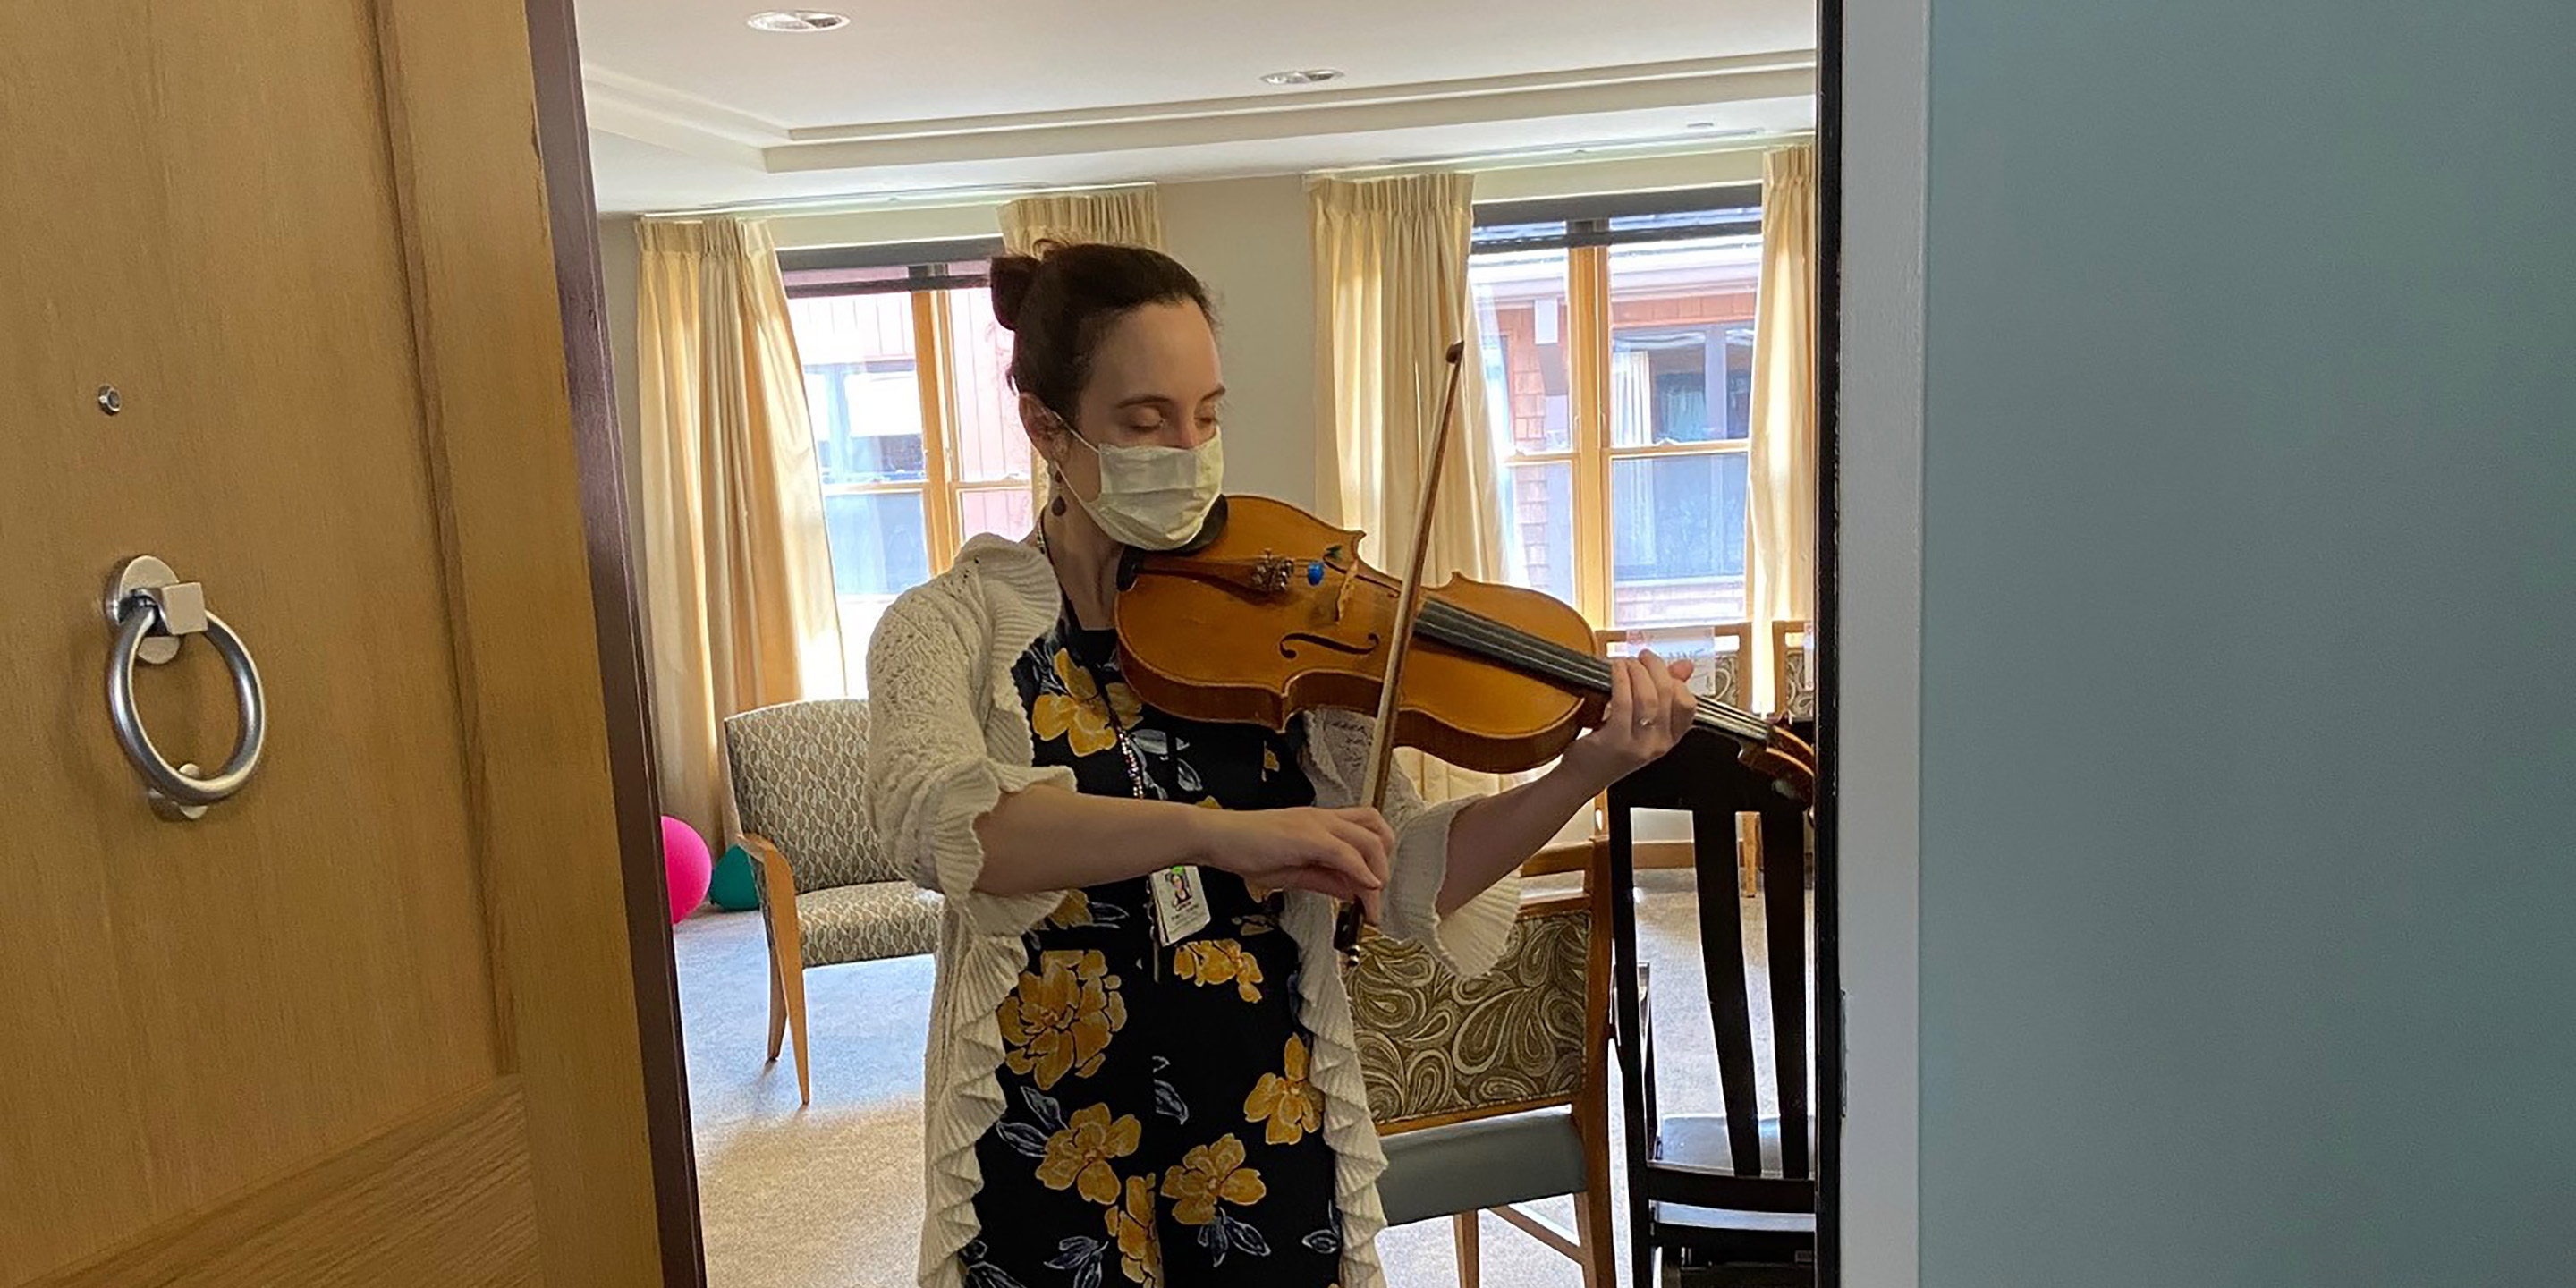 NewBridge on the Charles employee, Leticia Alvaraz, plays a violin while wearing a face mask during the COVID-19 coronavirus pandemic